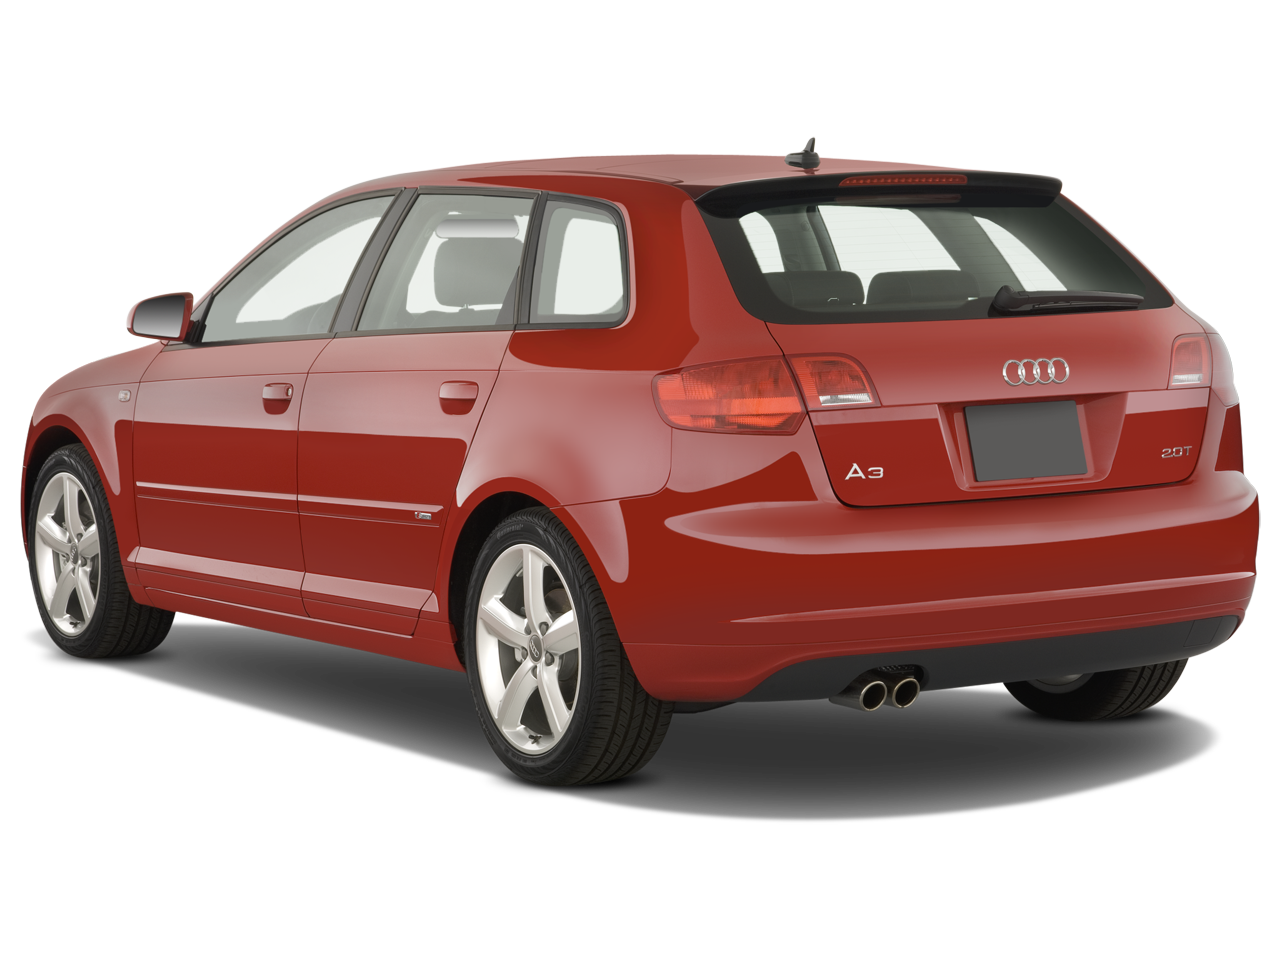 cheapest cars to insure for teens revealed 2008 audi a3 tops list. Black Bedroom Furniture Sets. Home Design Ideas